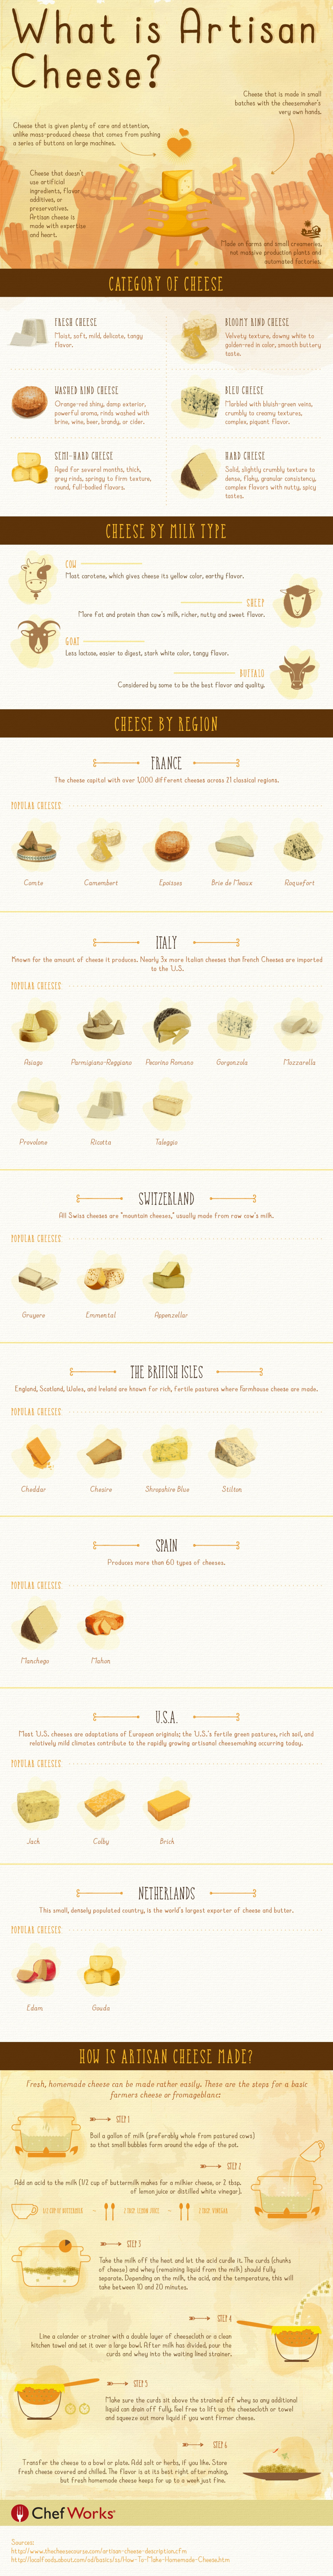 What is Artisan Cheese